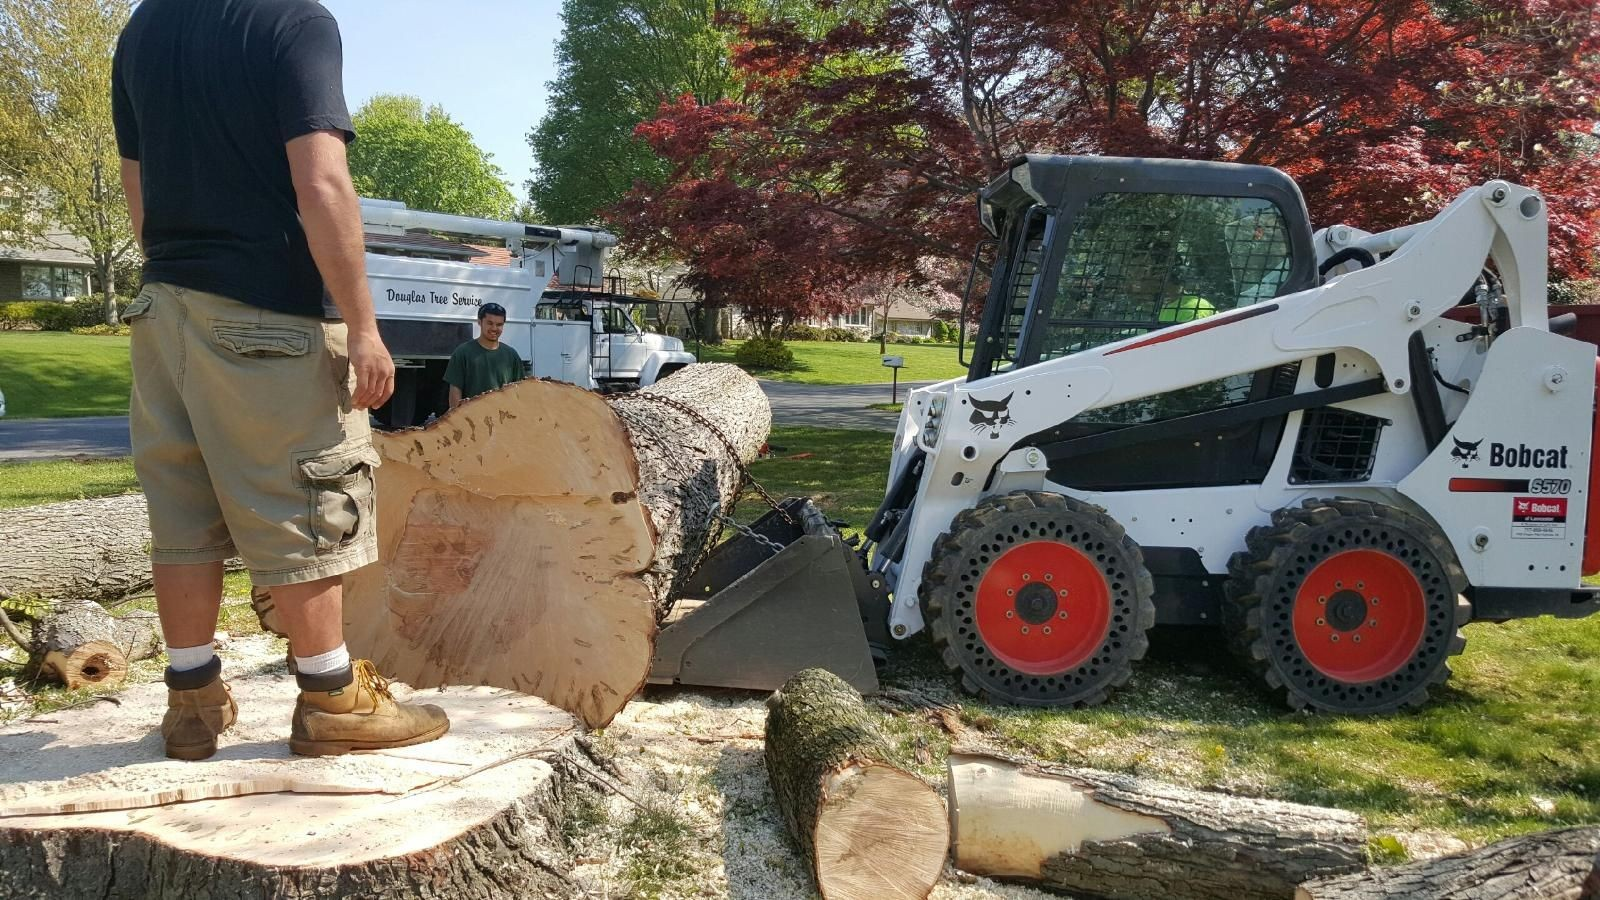 Vista-Carlsbad CA Tree Trimming and Stump Grinding Services-We Offer Tree Trimming Services, Tree Removal, Tree Pruning, Tree Cutting, Residential and Commercial Tree Trimming Services, Storm Damage, Emergency Tree Removal, Land Clearing, Tree Companies, Tree Care Service, Stump Grinding, and we're the Best Tree Trimming Company Near You Guaranteed!